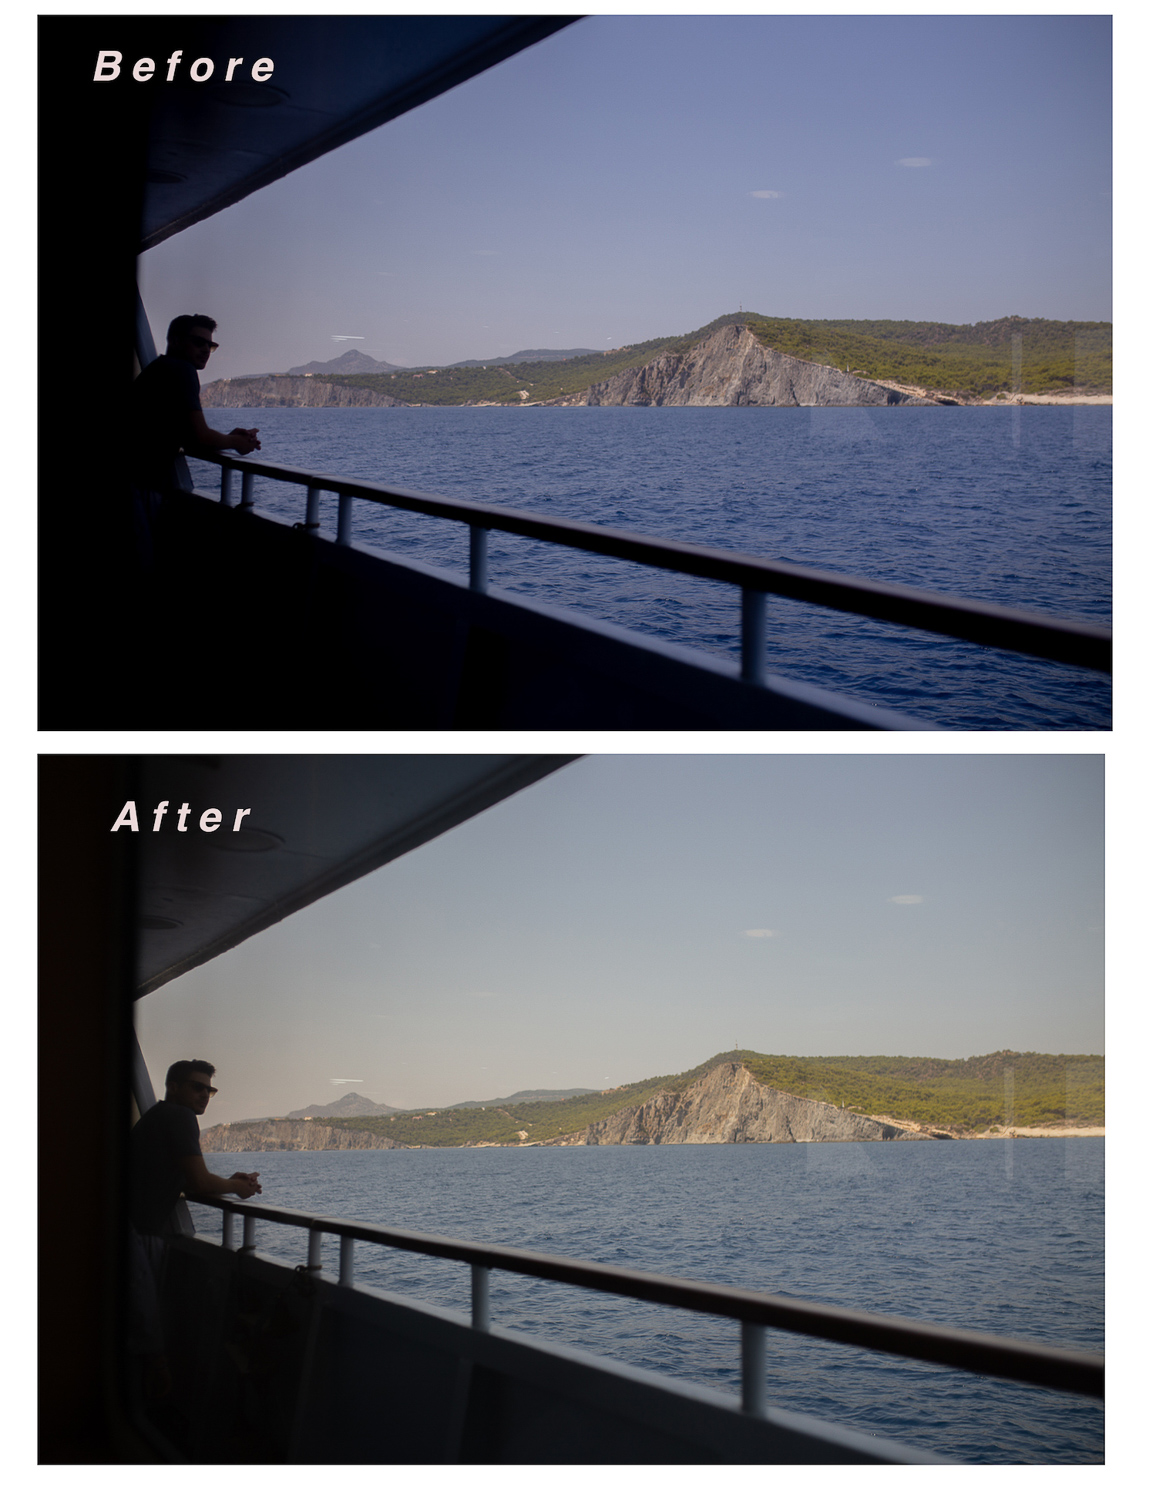 How to Achieve a Consistent and Clean Photo Editing Style - Color Editing - Example 01